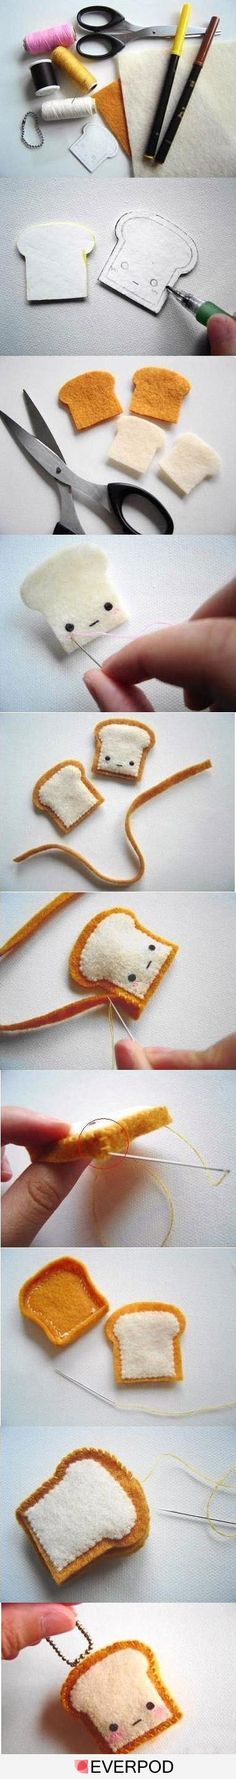 I can't even stand how cute all the little felt critters I've seen to make... this one: TOAST! How cute is that!?